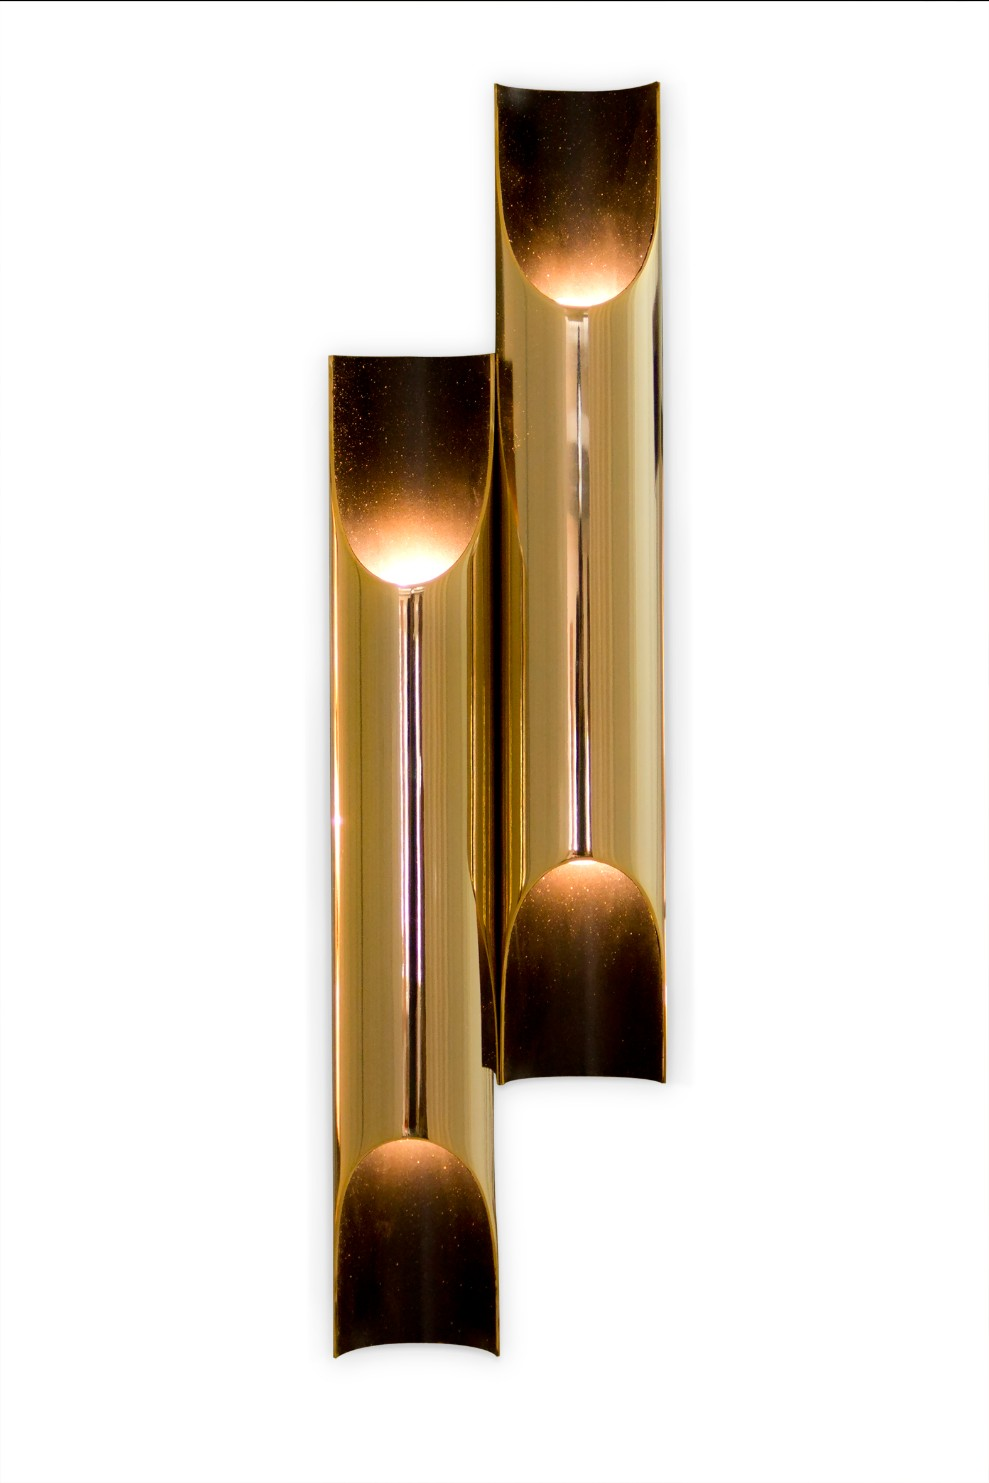 5 Golden Lamps for Your New Year Lighting Decorations 1